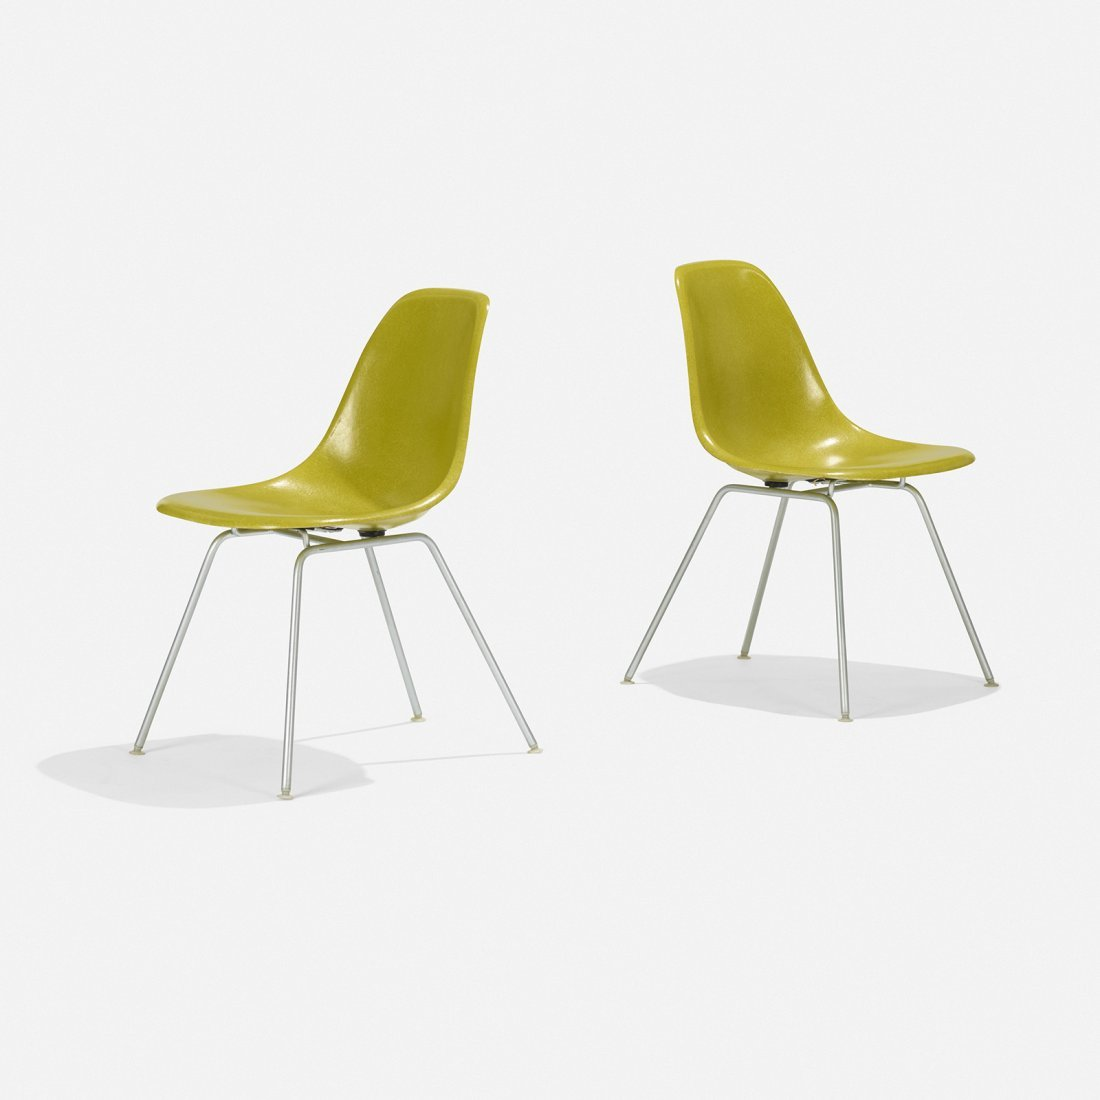 Charles and Ray Eames, DSXs, pair